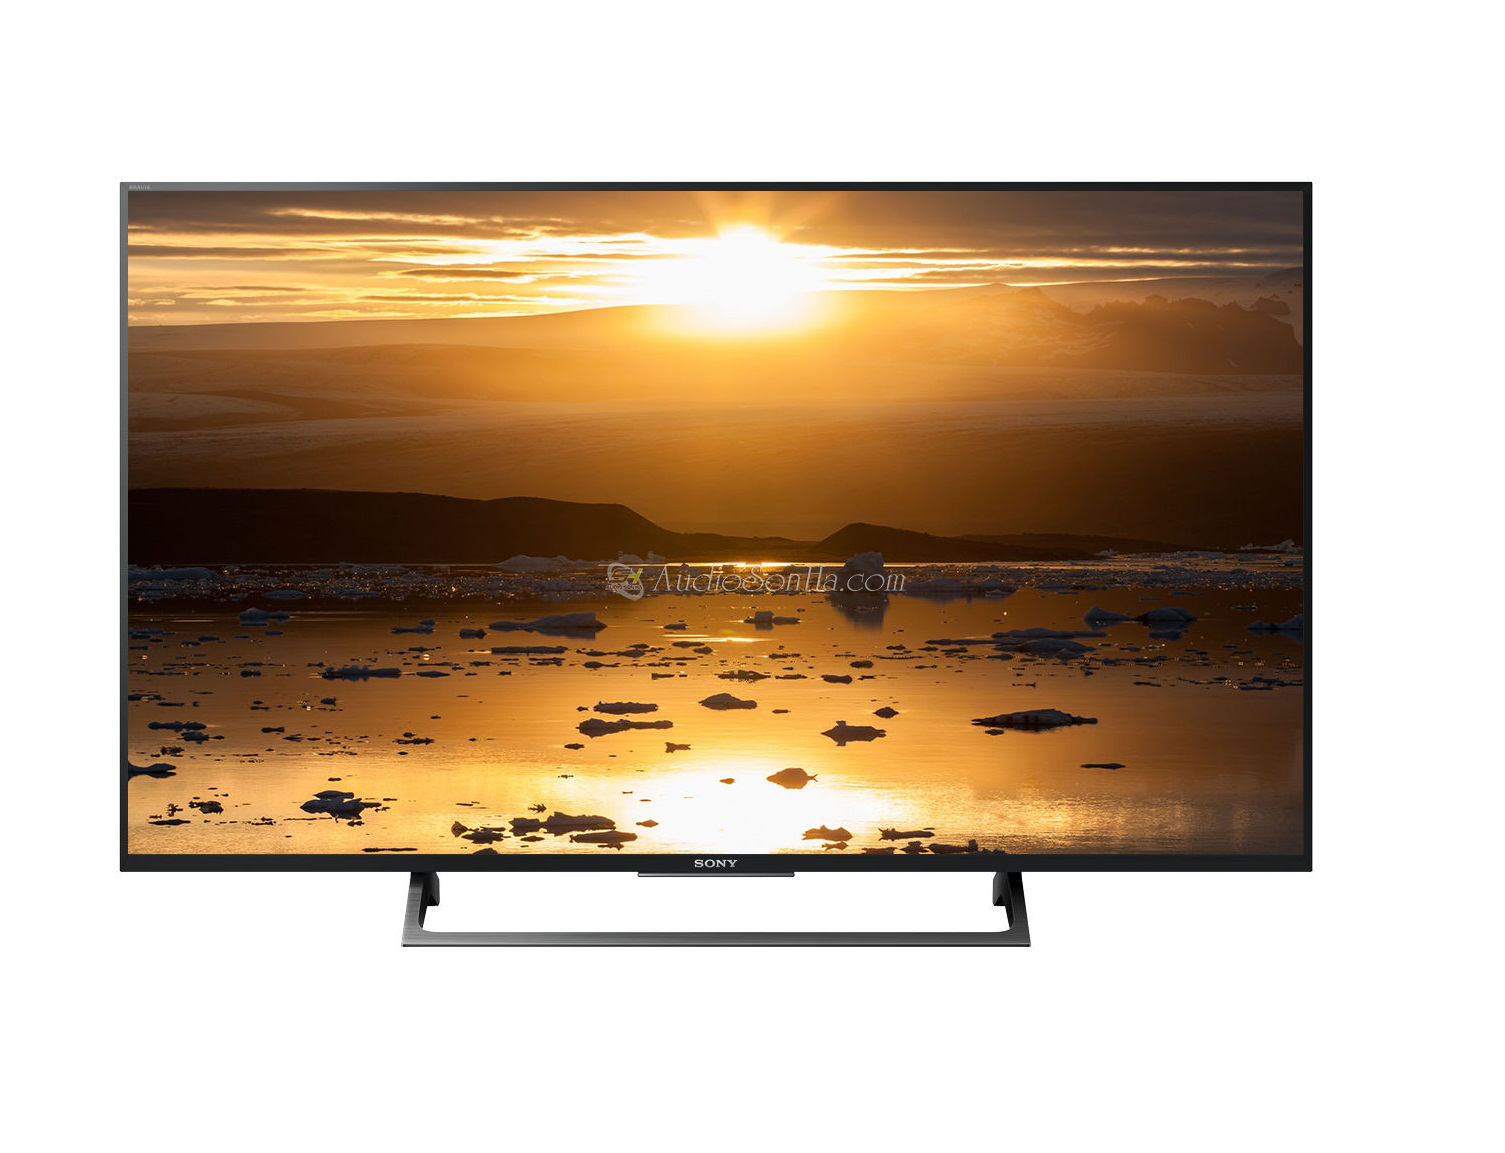 Sony LED TV W75E Full HD 43""